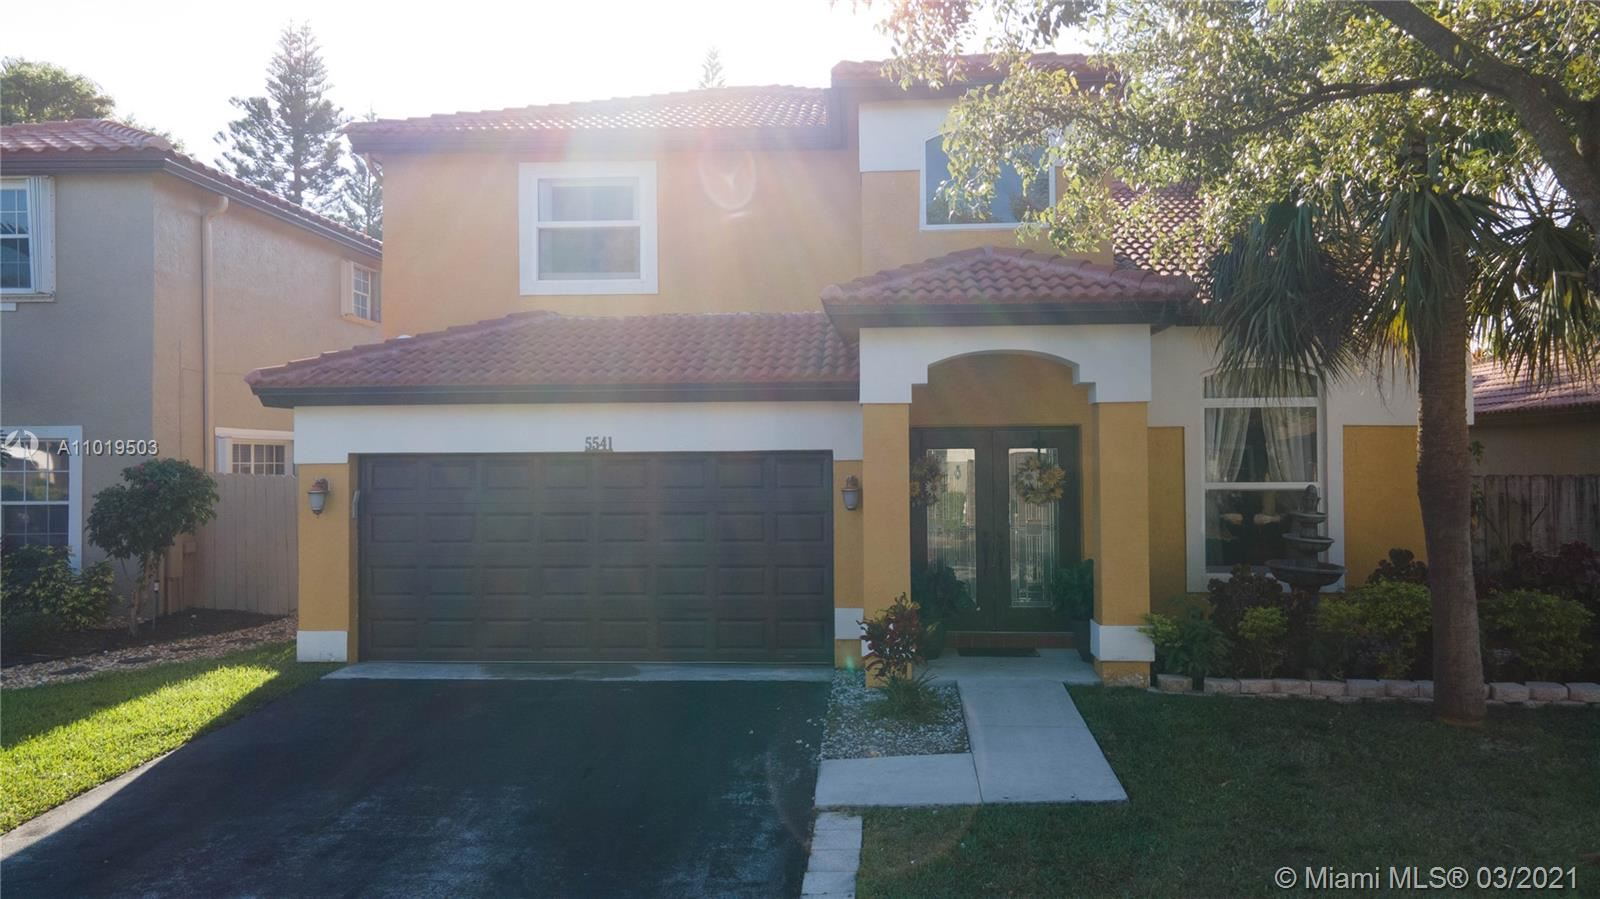 5541 NW 50th Ave, Coconut Creek, FL 33073 - #: A11019503